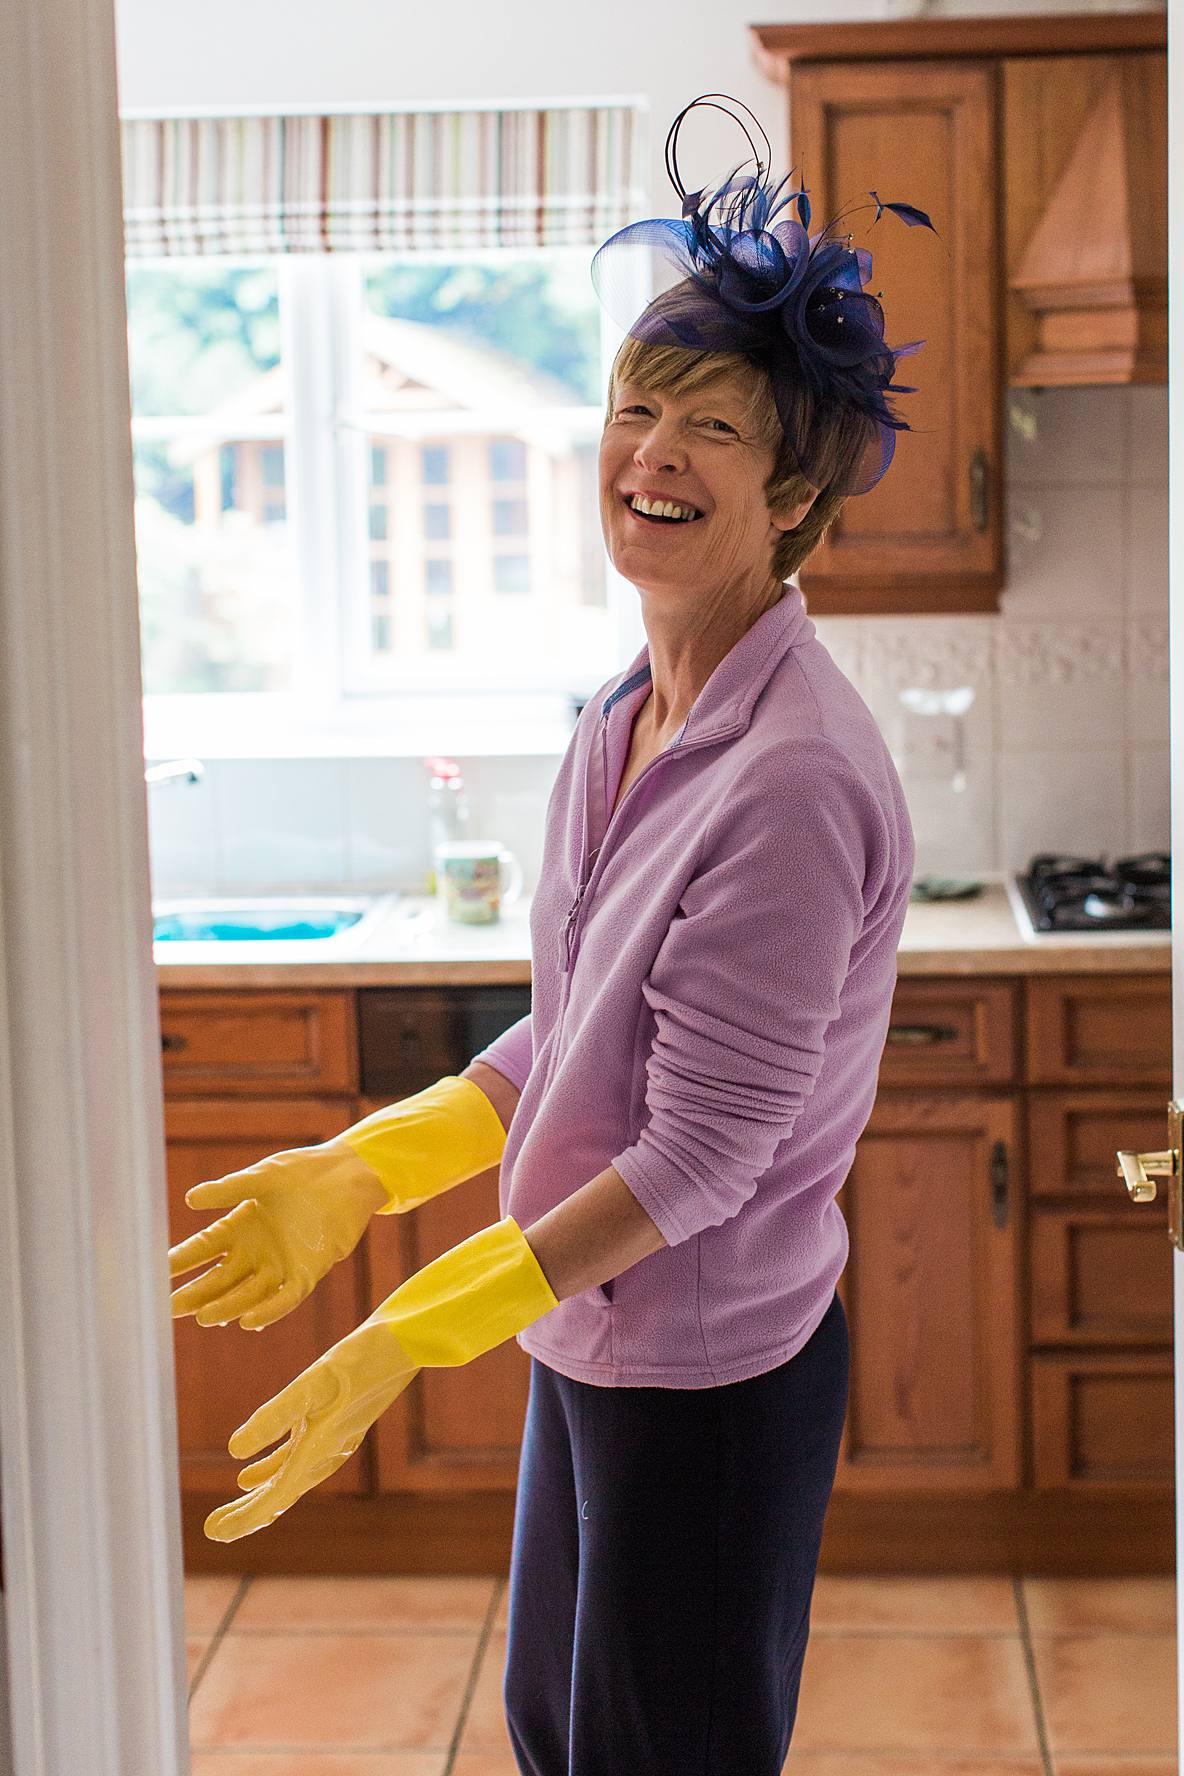 mum wearing rubber gloves on Hereford wedding day